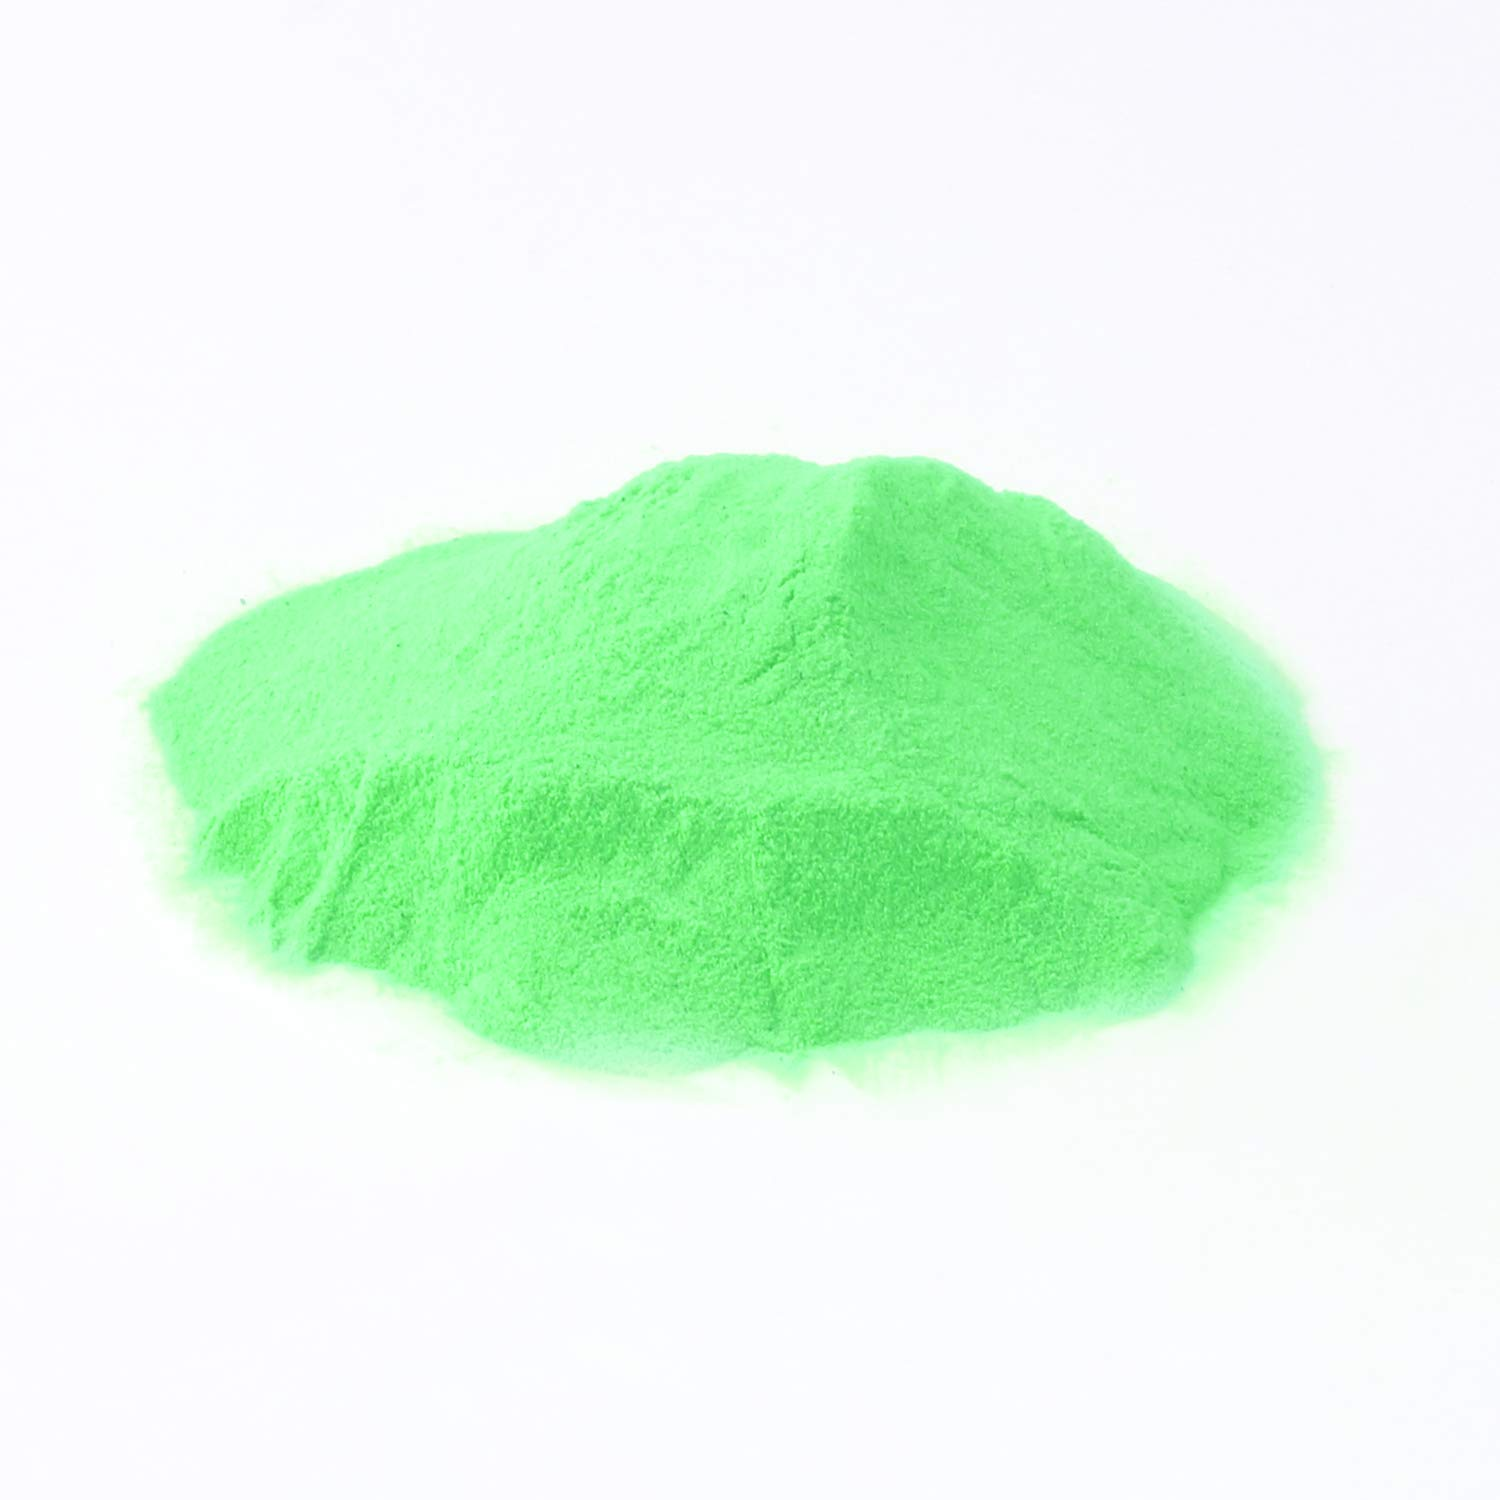 100g Phosphorescent/Luminous Neon Glow in The Dark Pigments in Green WIRSV